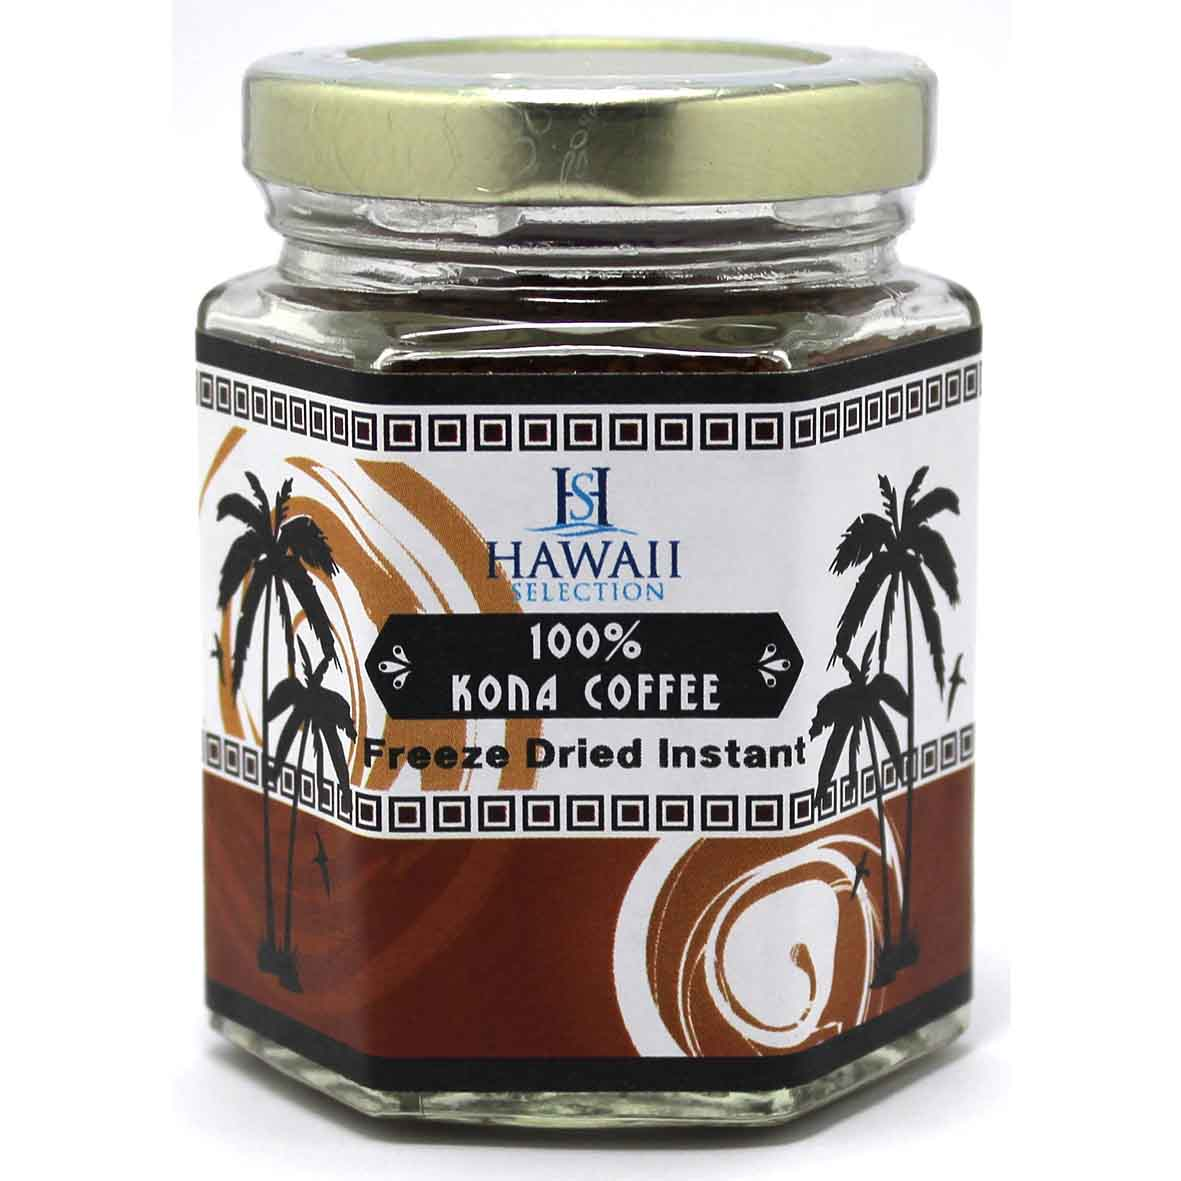 �h�����N�E��i/ �yHAWAII SELECTION�z �C���X�^���g�R�i�R�[�q�[ / 1.5oz